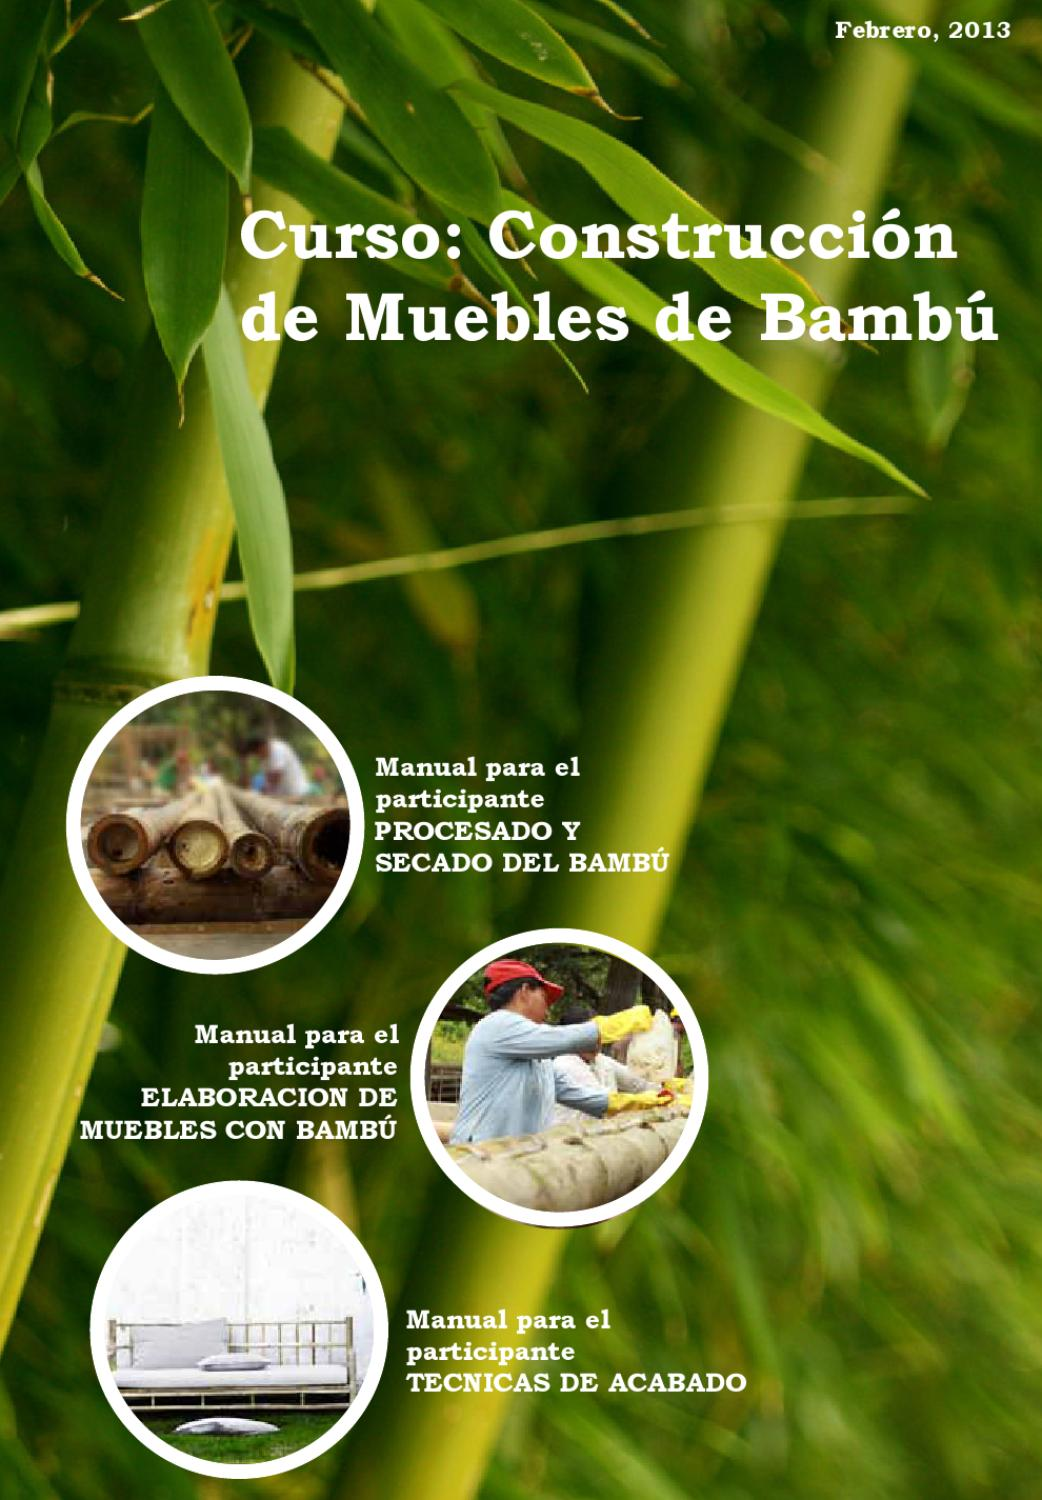 Issuu manual de construcci n de muebles de bamb by omar - Muebles de bambu ...